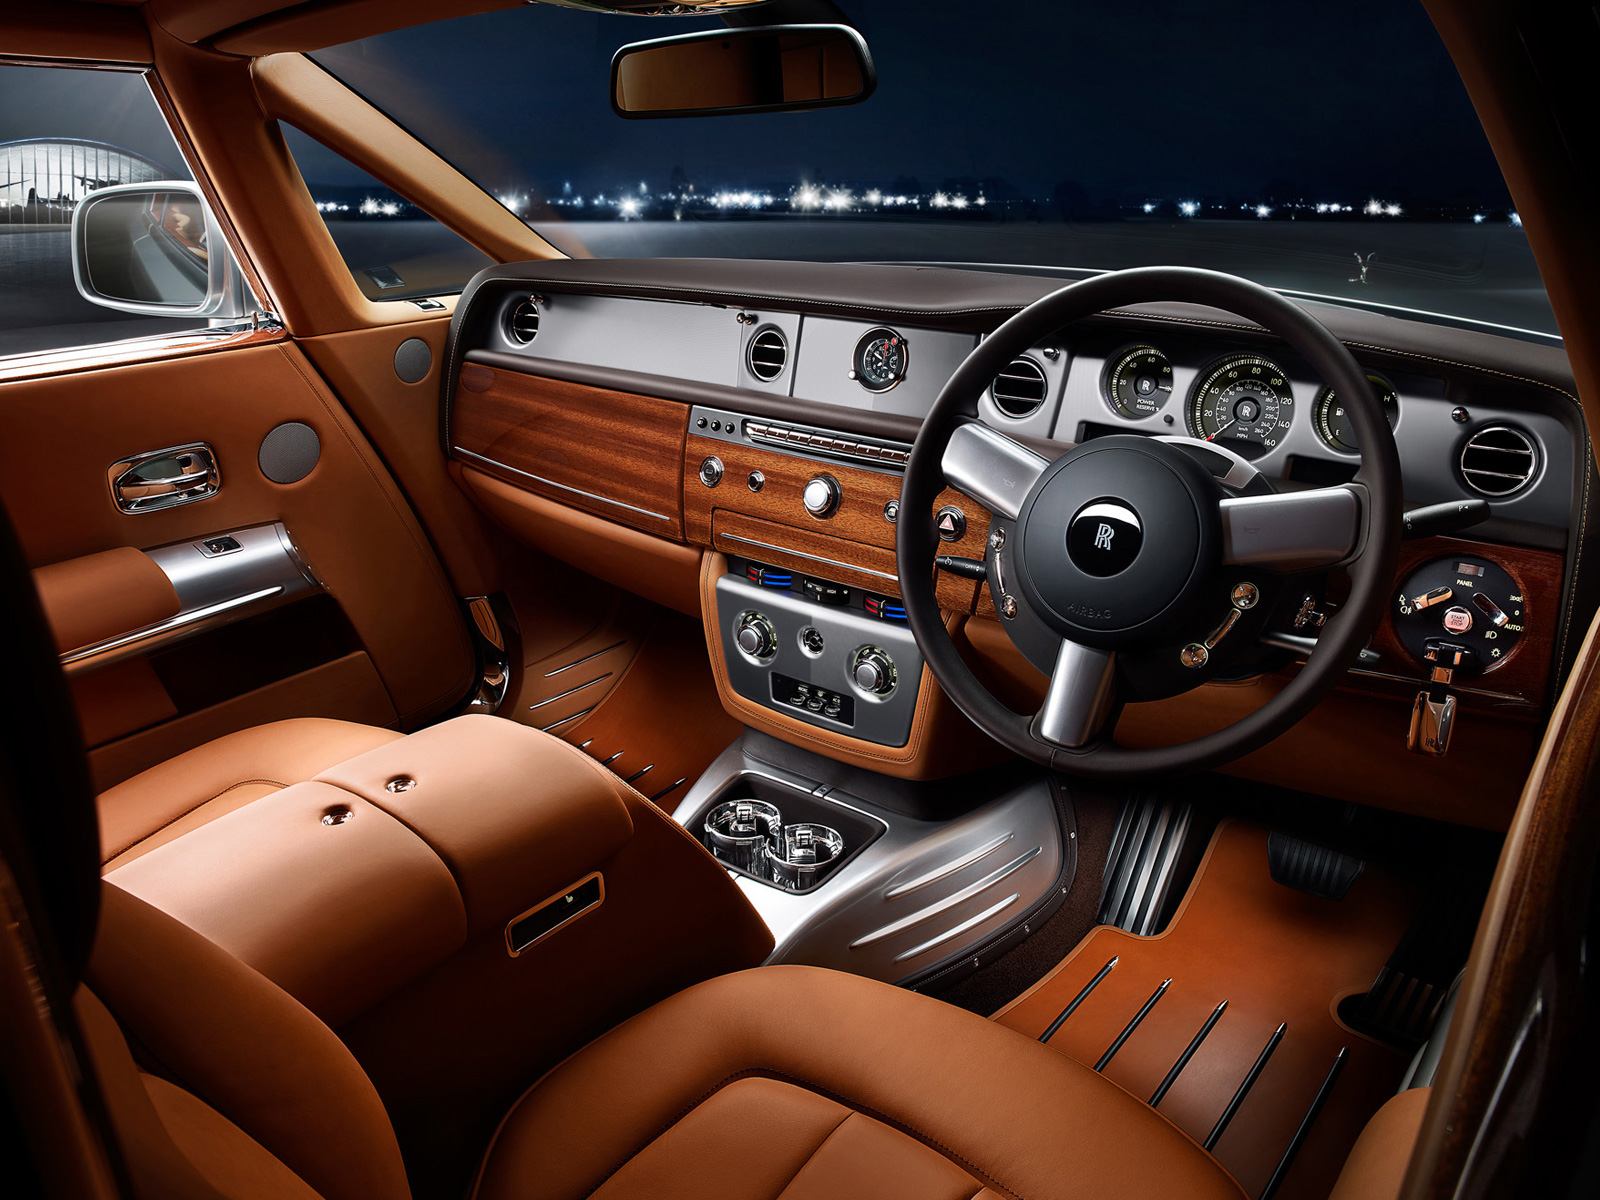 Sports Cars Rolls Royce Phantom 2013 Interior